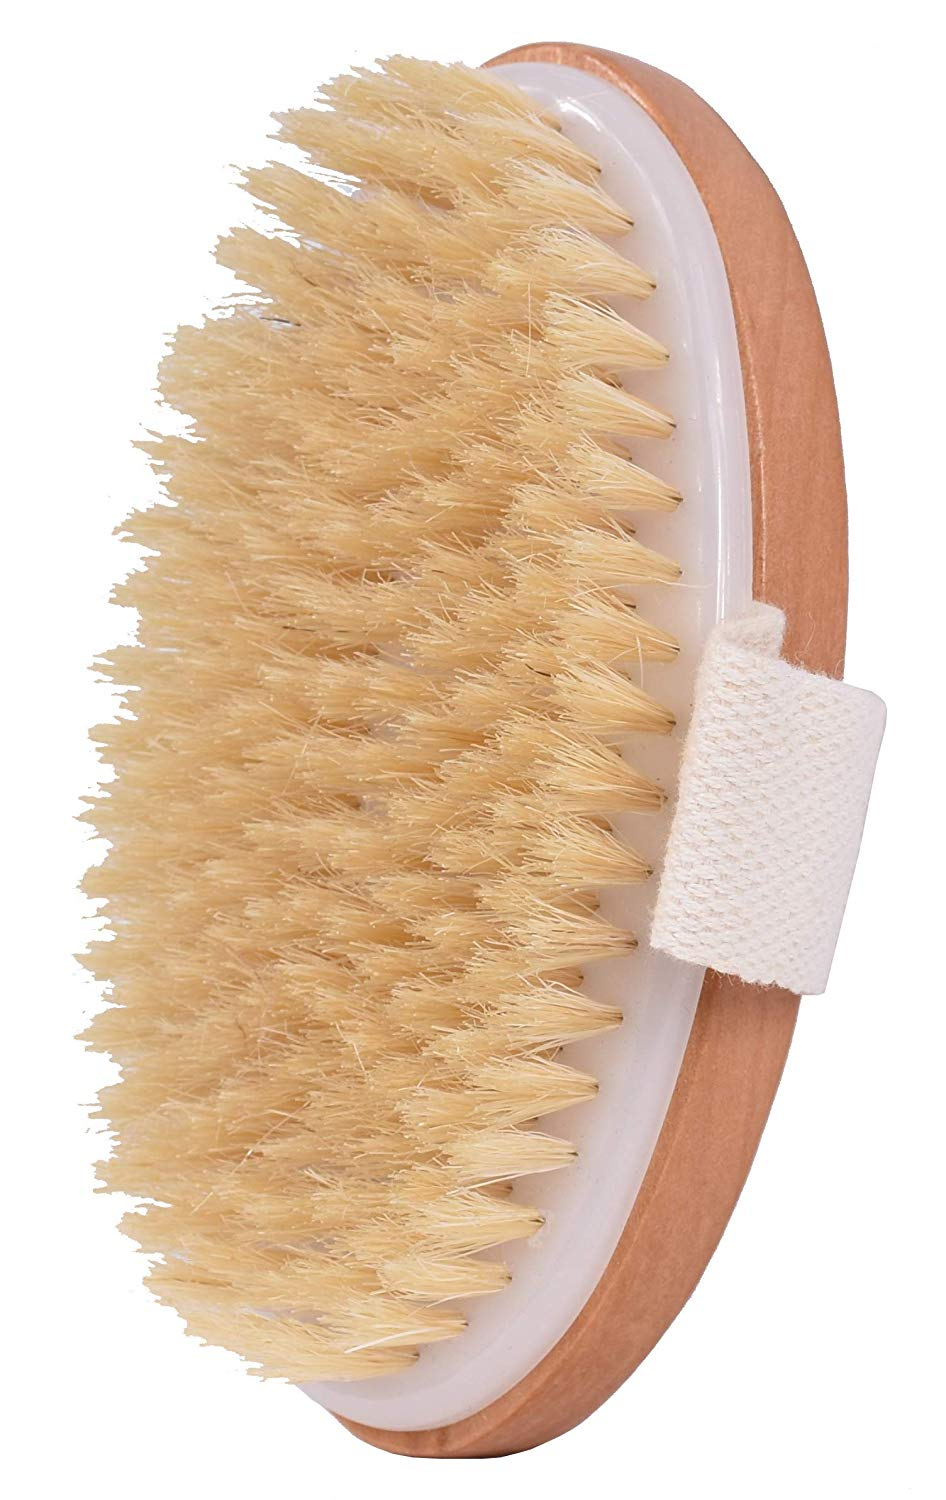 100% Natural Bristles Body Massager Improves Skin's Health Back Bath Scrubber Dry Bath Skin Body Brush